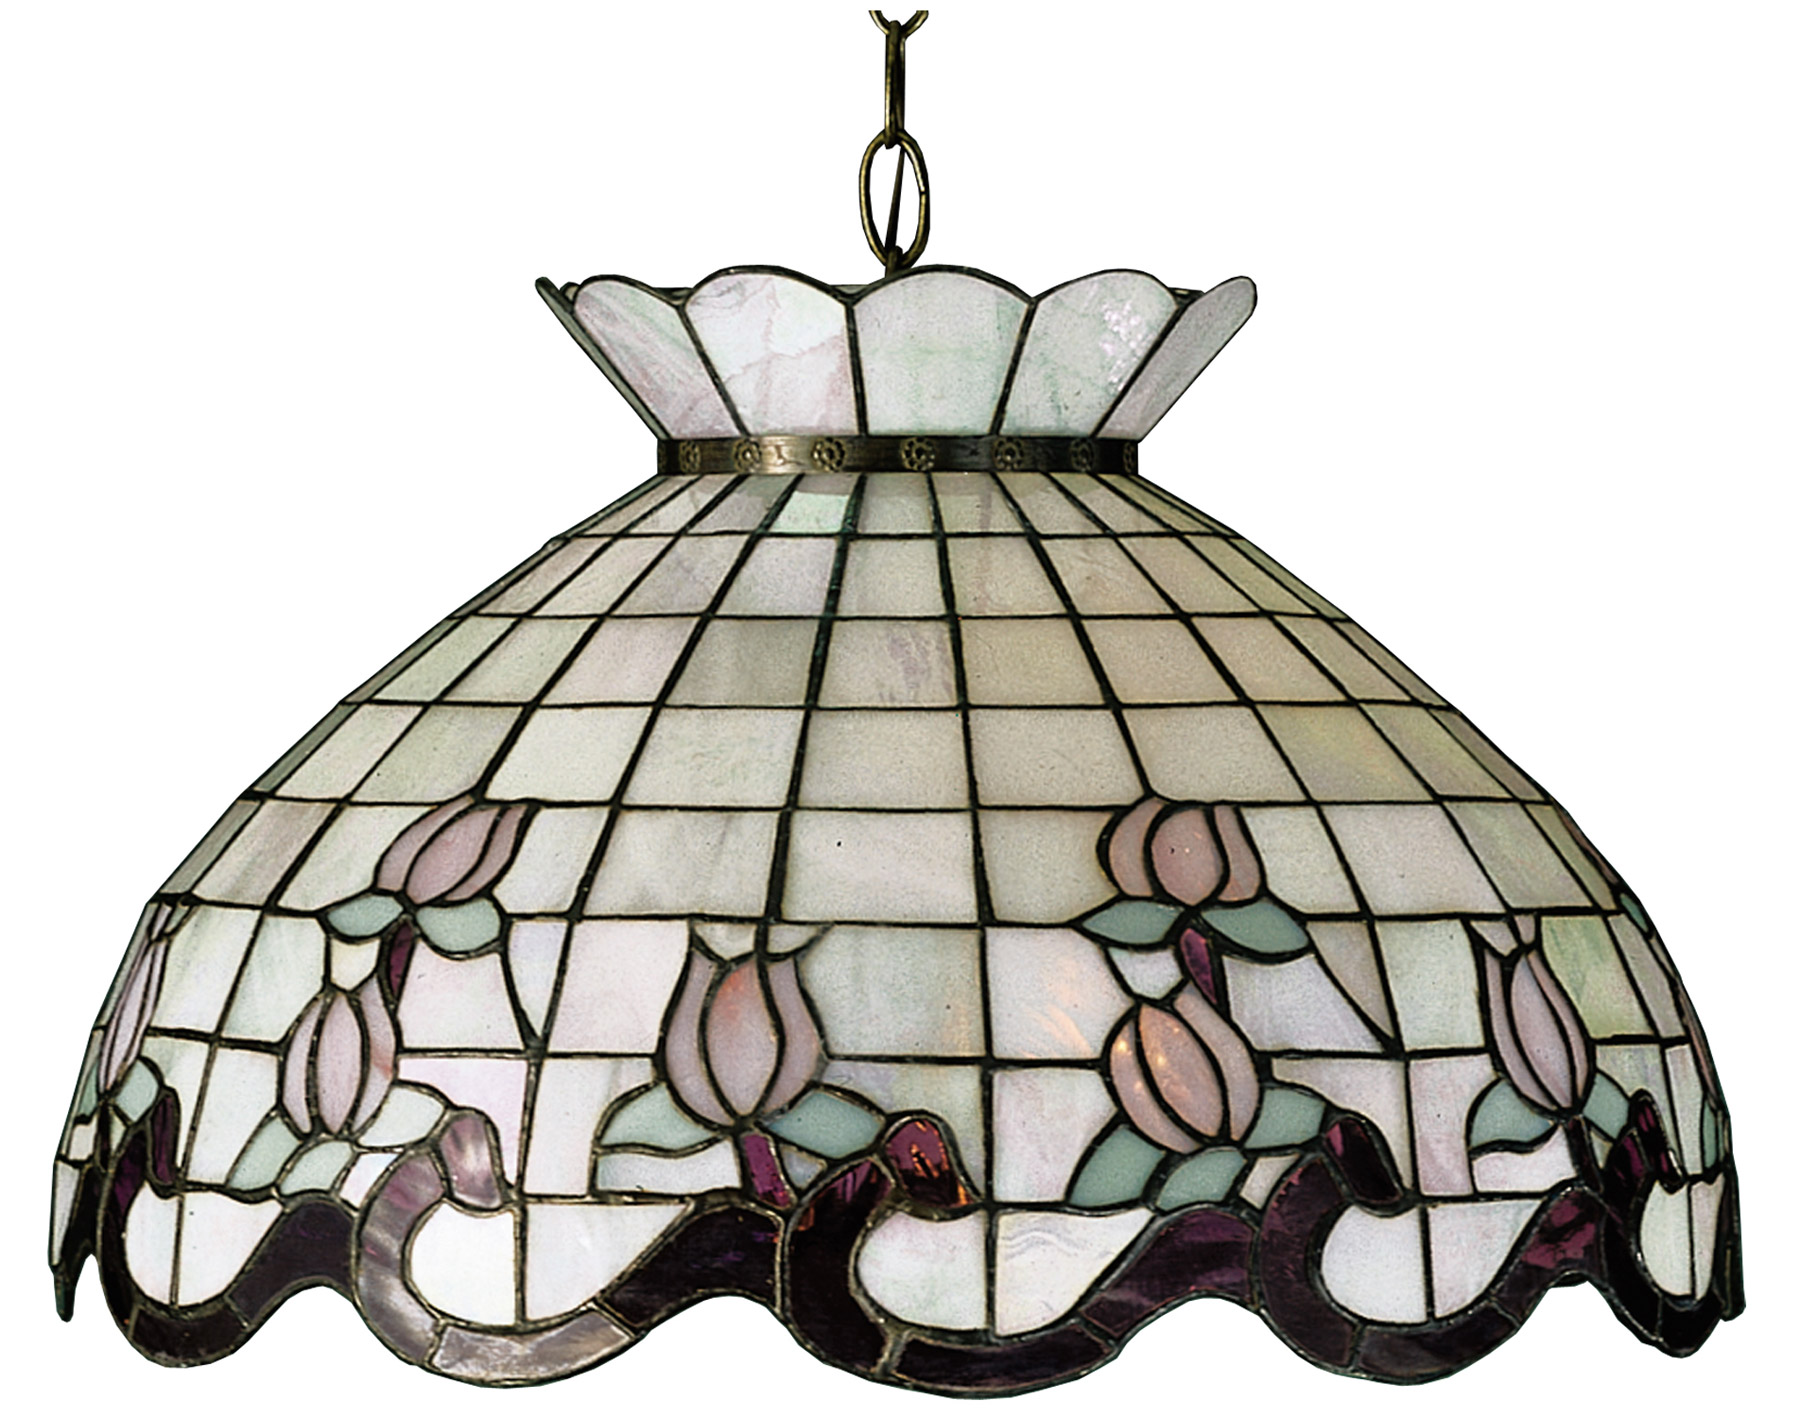 lamp itm loading ceiling lamps luxury is fixture ceilings chandelier stained glass image tiffany pendant light